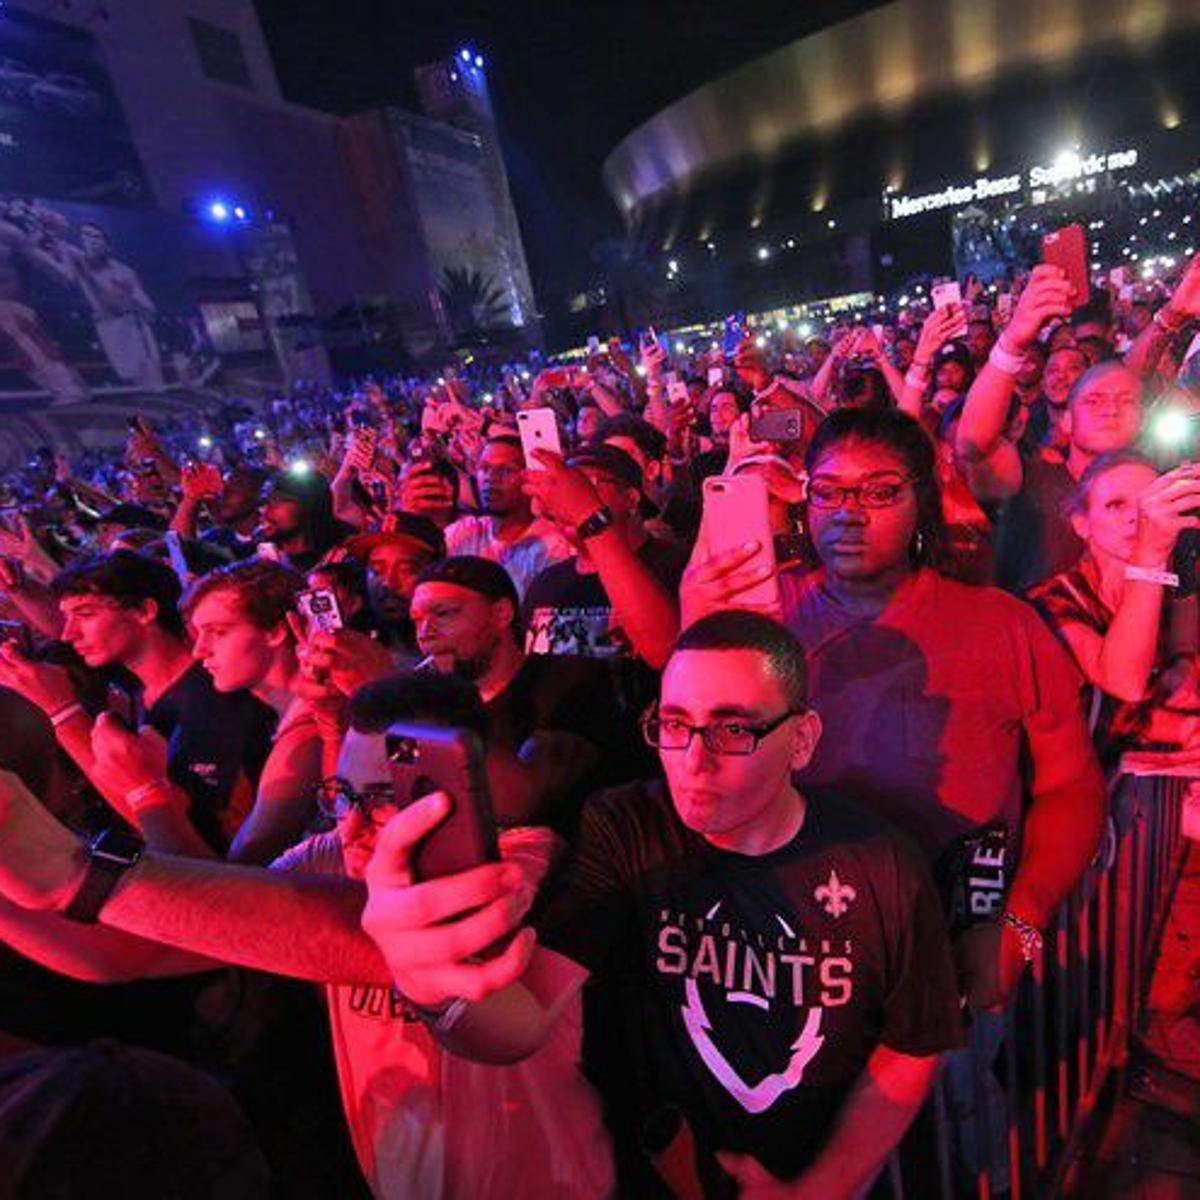 Will the Las Vegas mass shooting affect New Orleans concerts